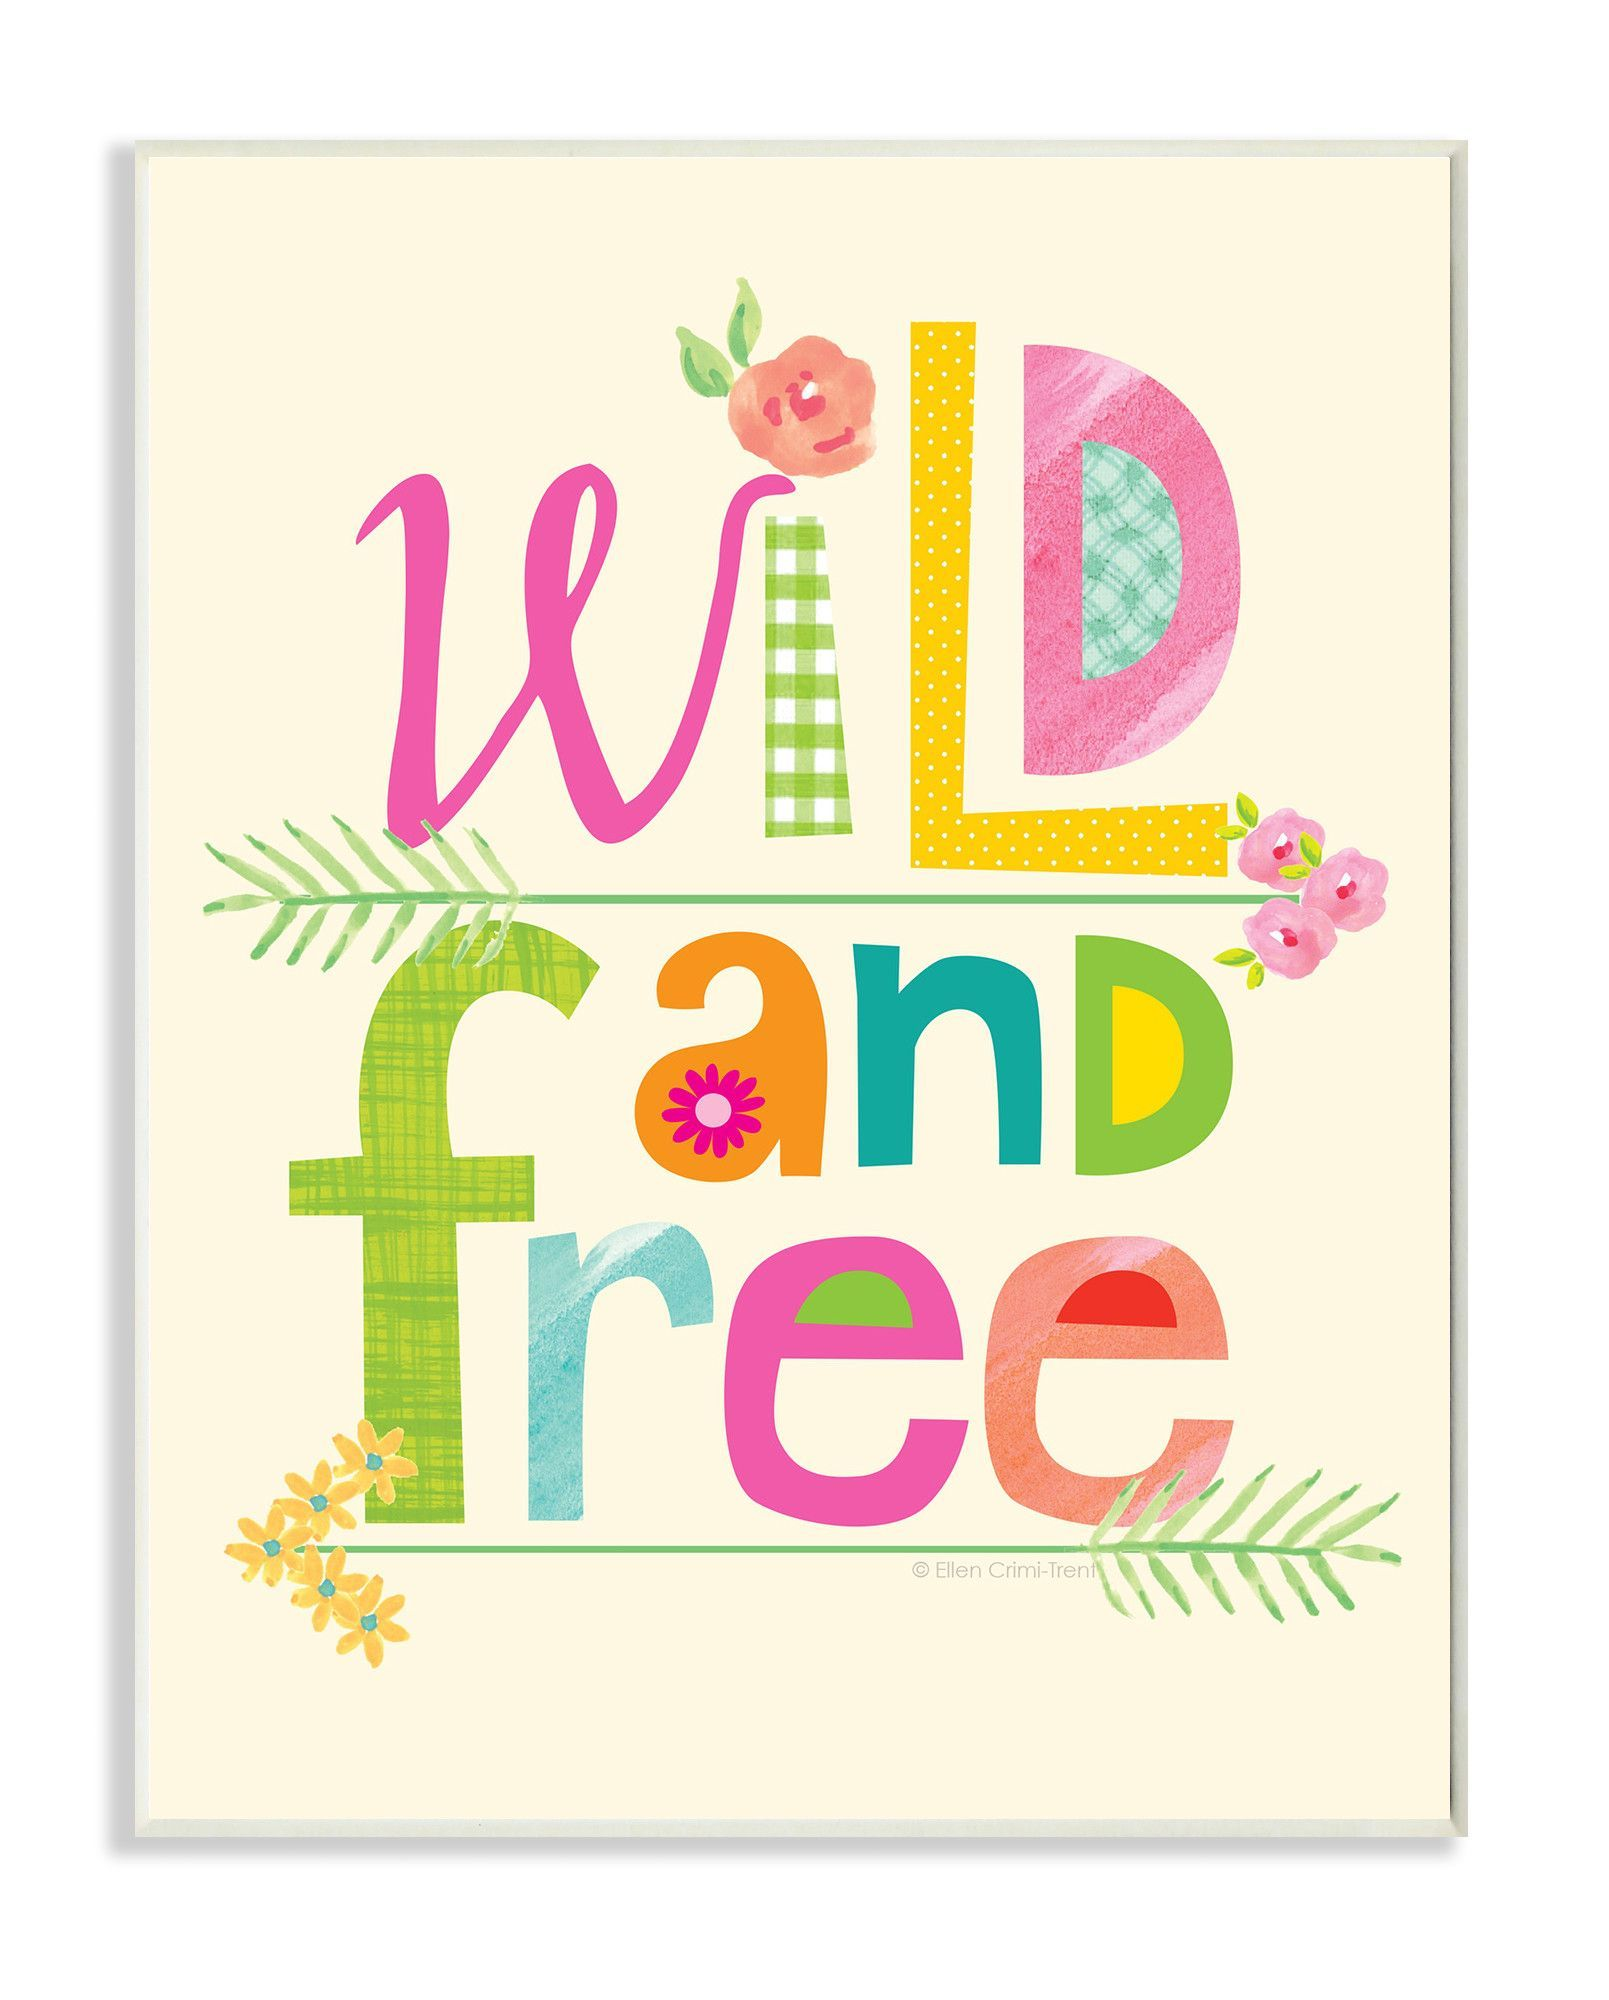 bedroom wall plaques. The Kids Room Wild And Free Wall Plaque Bedroom Plaques E